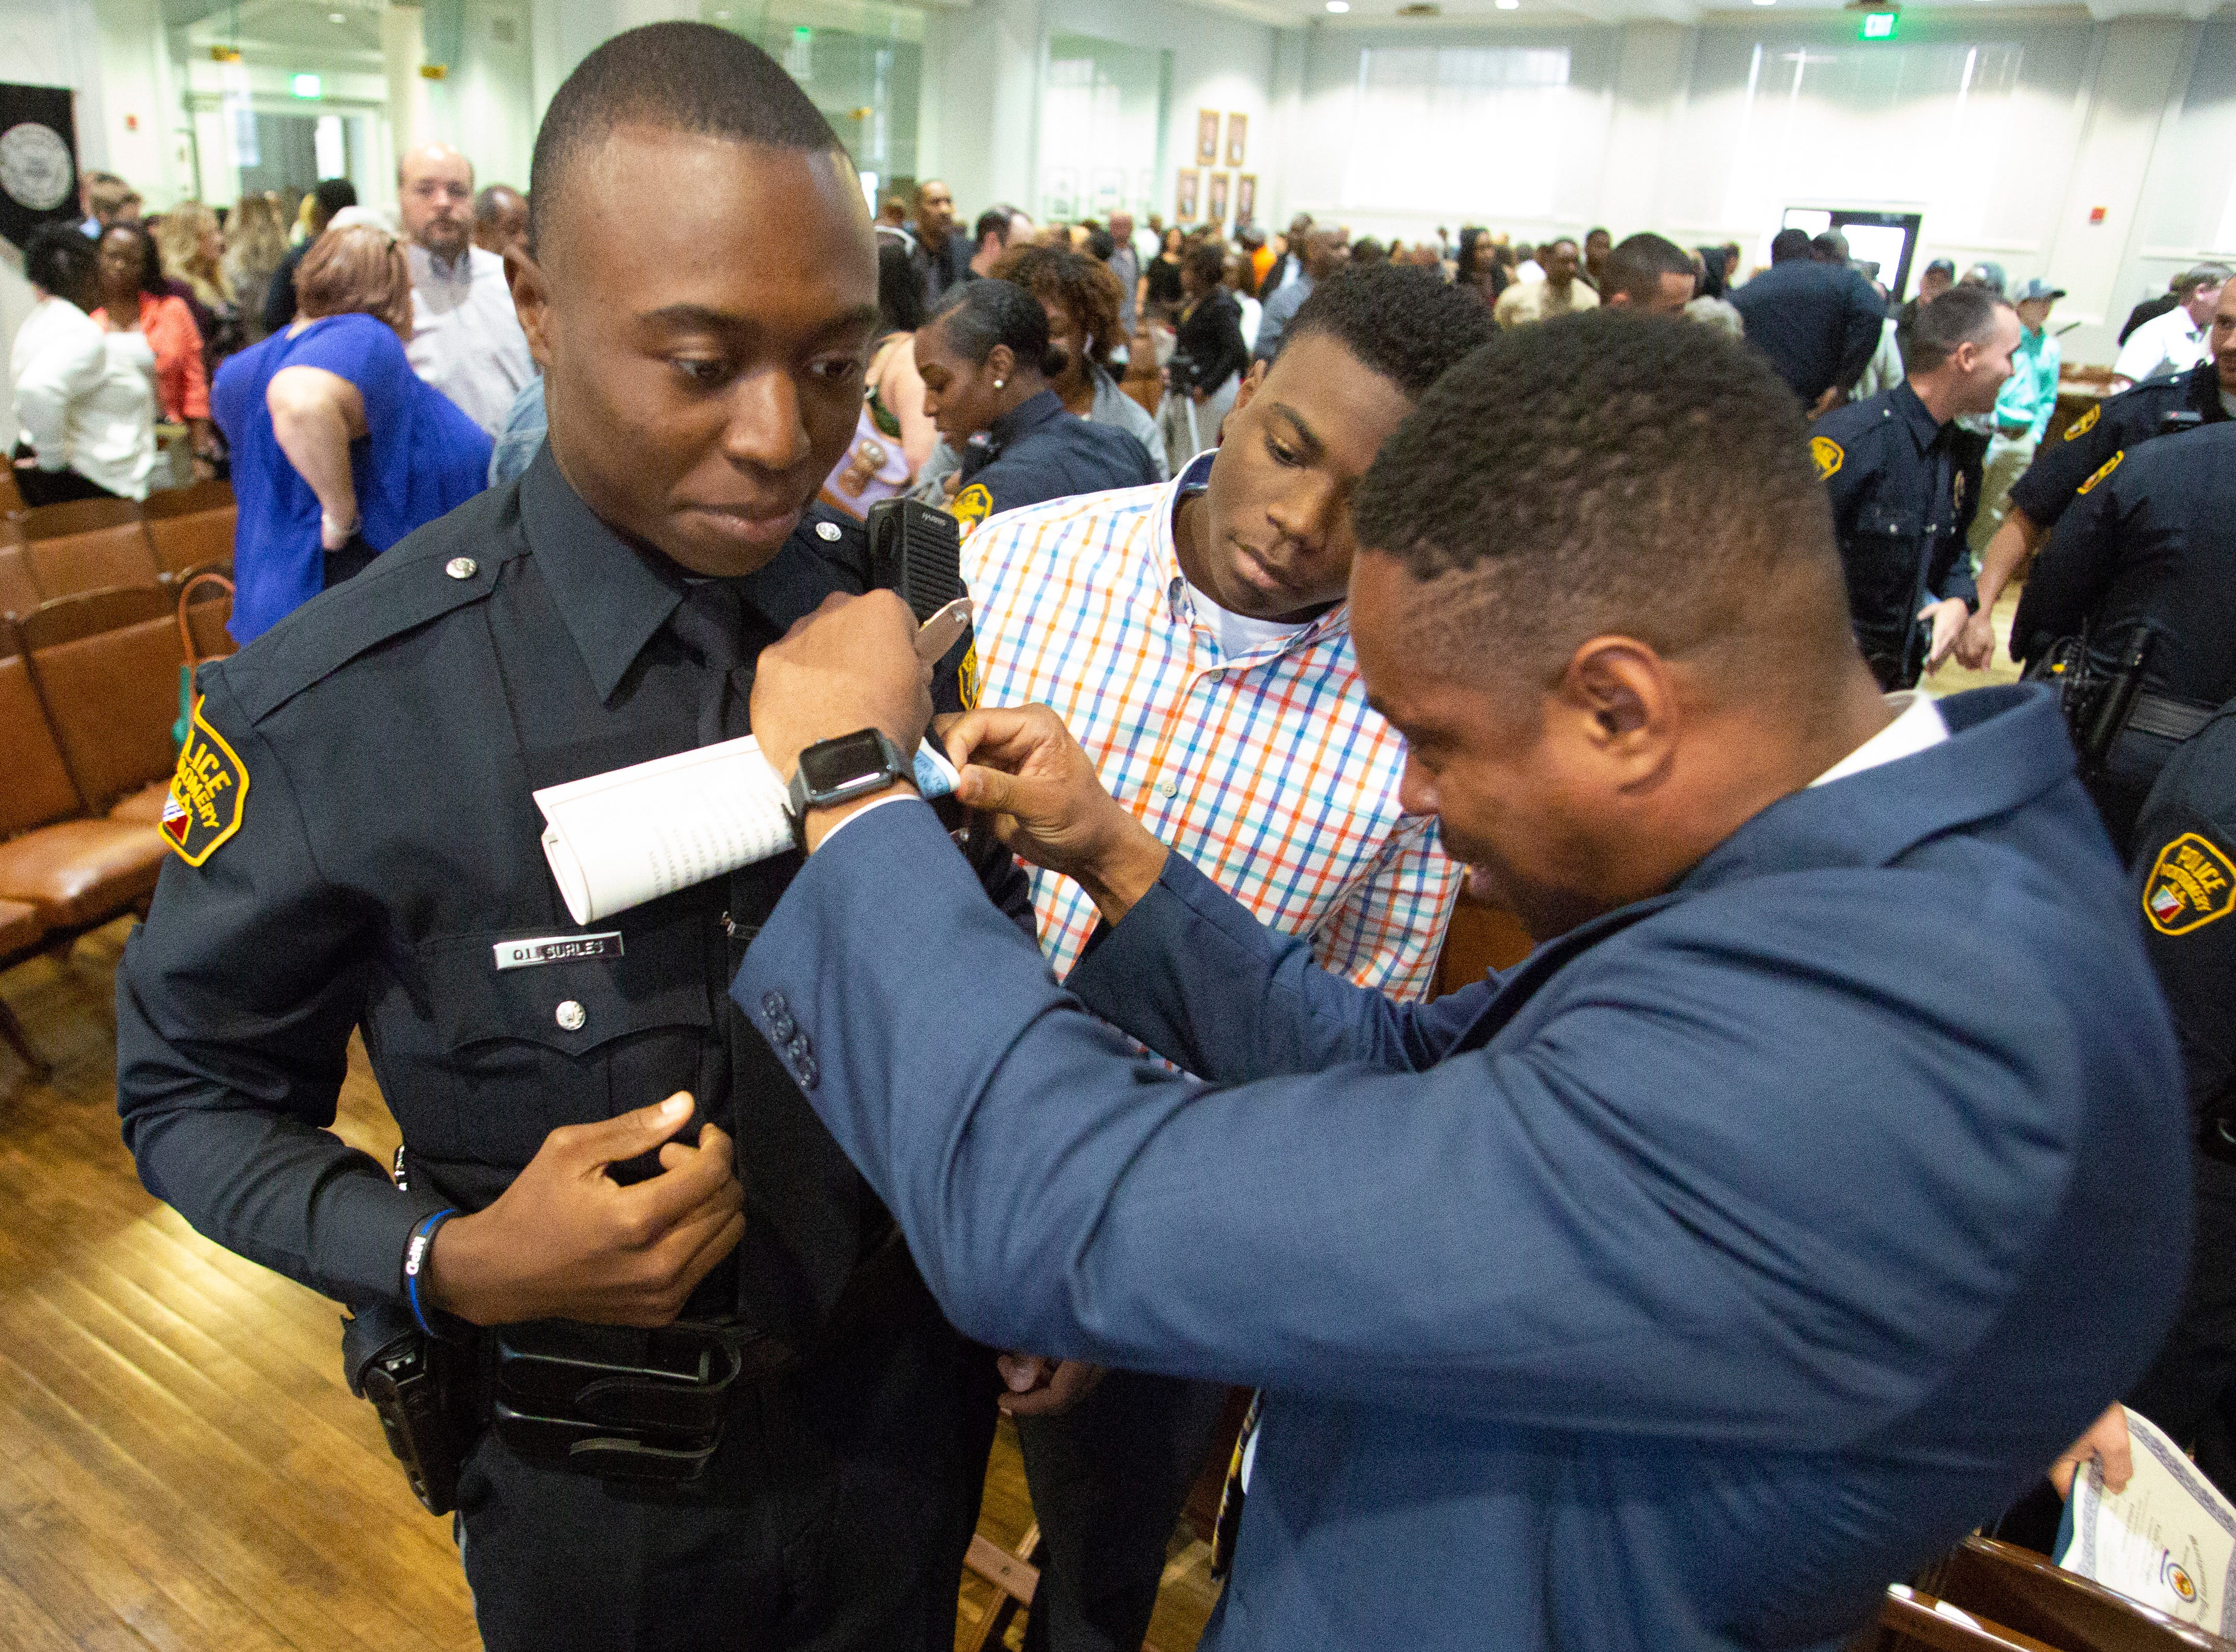 Montgomery police officer Quendarious Surles has his badge adjusted after graduating from the police academy.